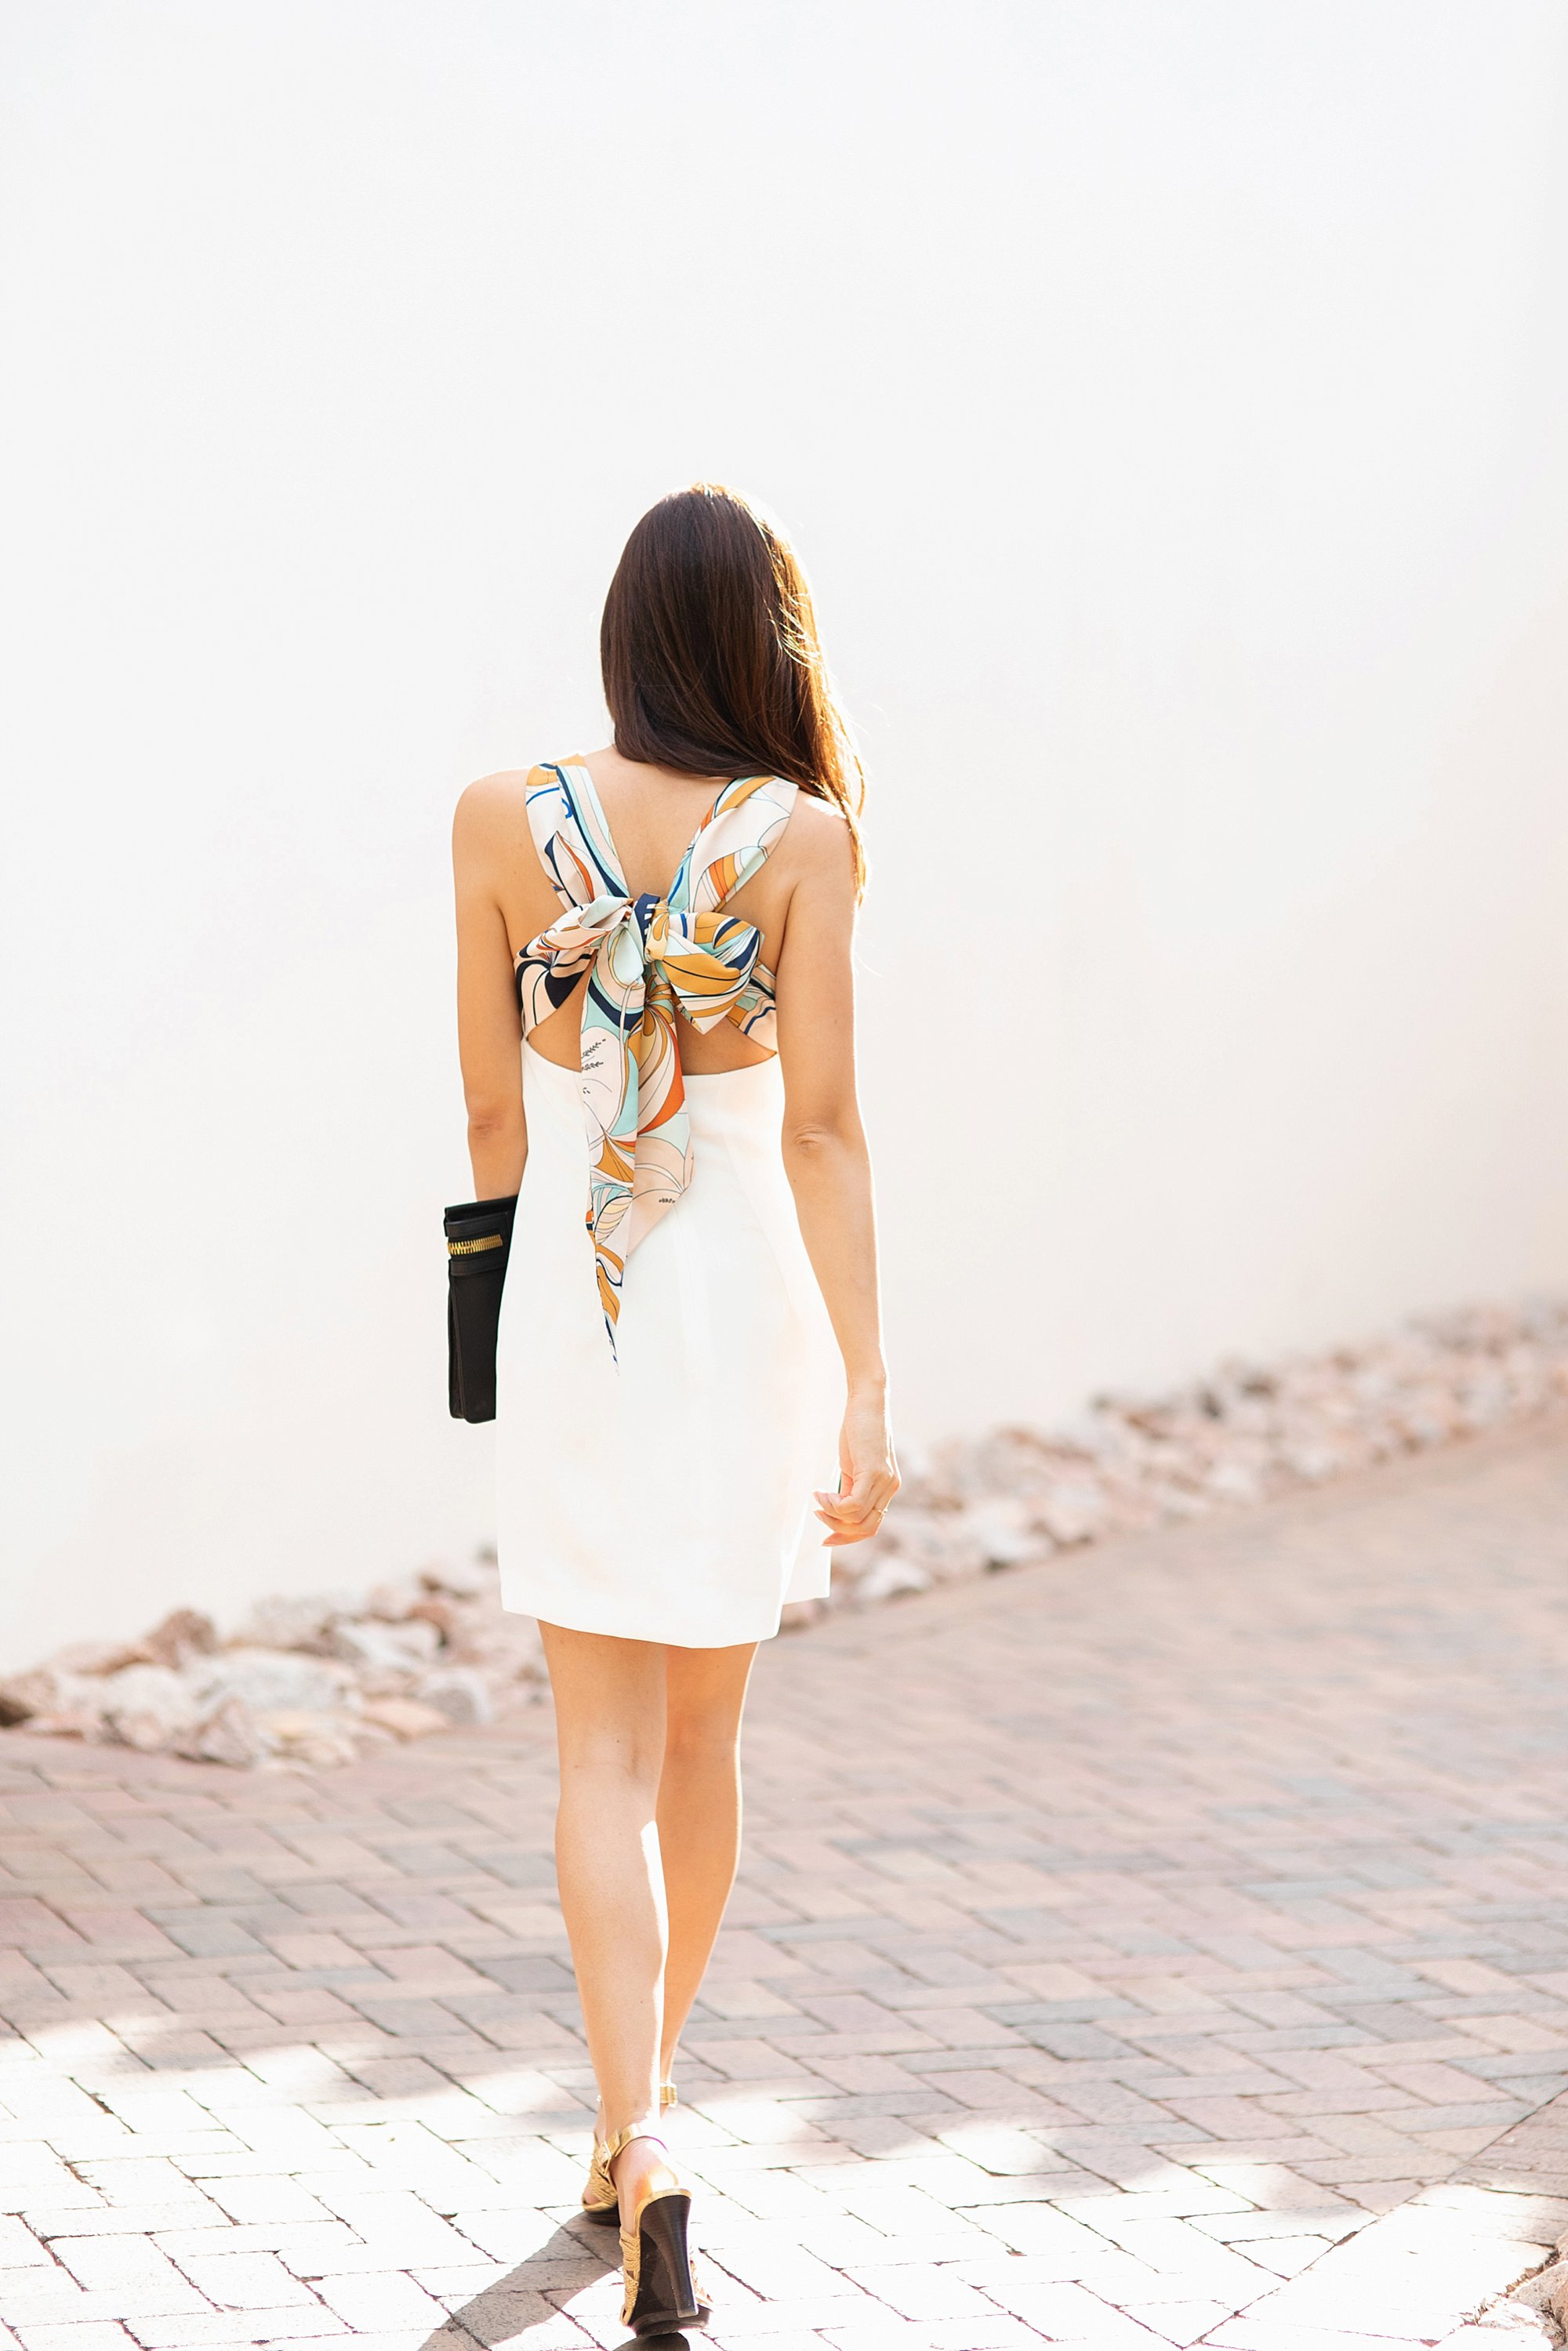 Mango Gugi2 scarf dress on blogger Diana Elizabeth in Phoenix, Arizona. Scarf dress paired a black clutch by India Hicks and white leather brass cuff back of her walking away to Heard Museum